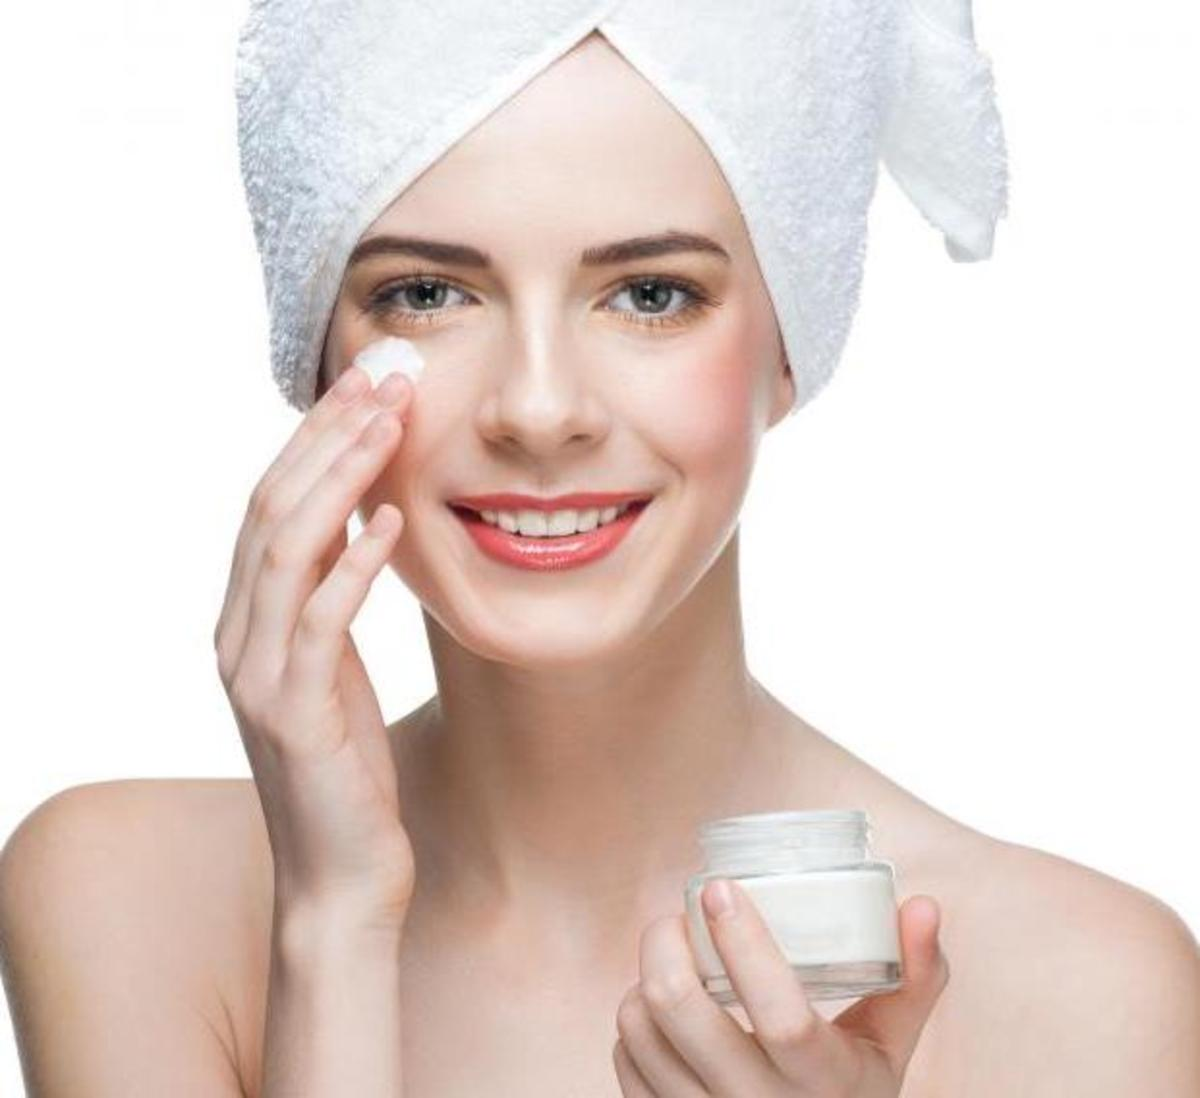 The Best Types of Moisturizer for Oily, Acne Prone Skin